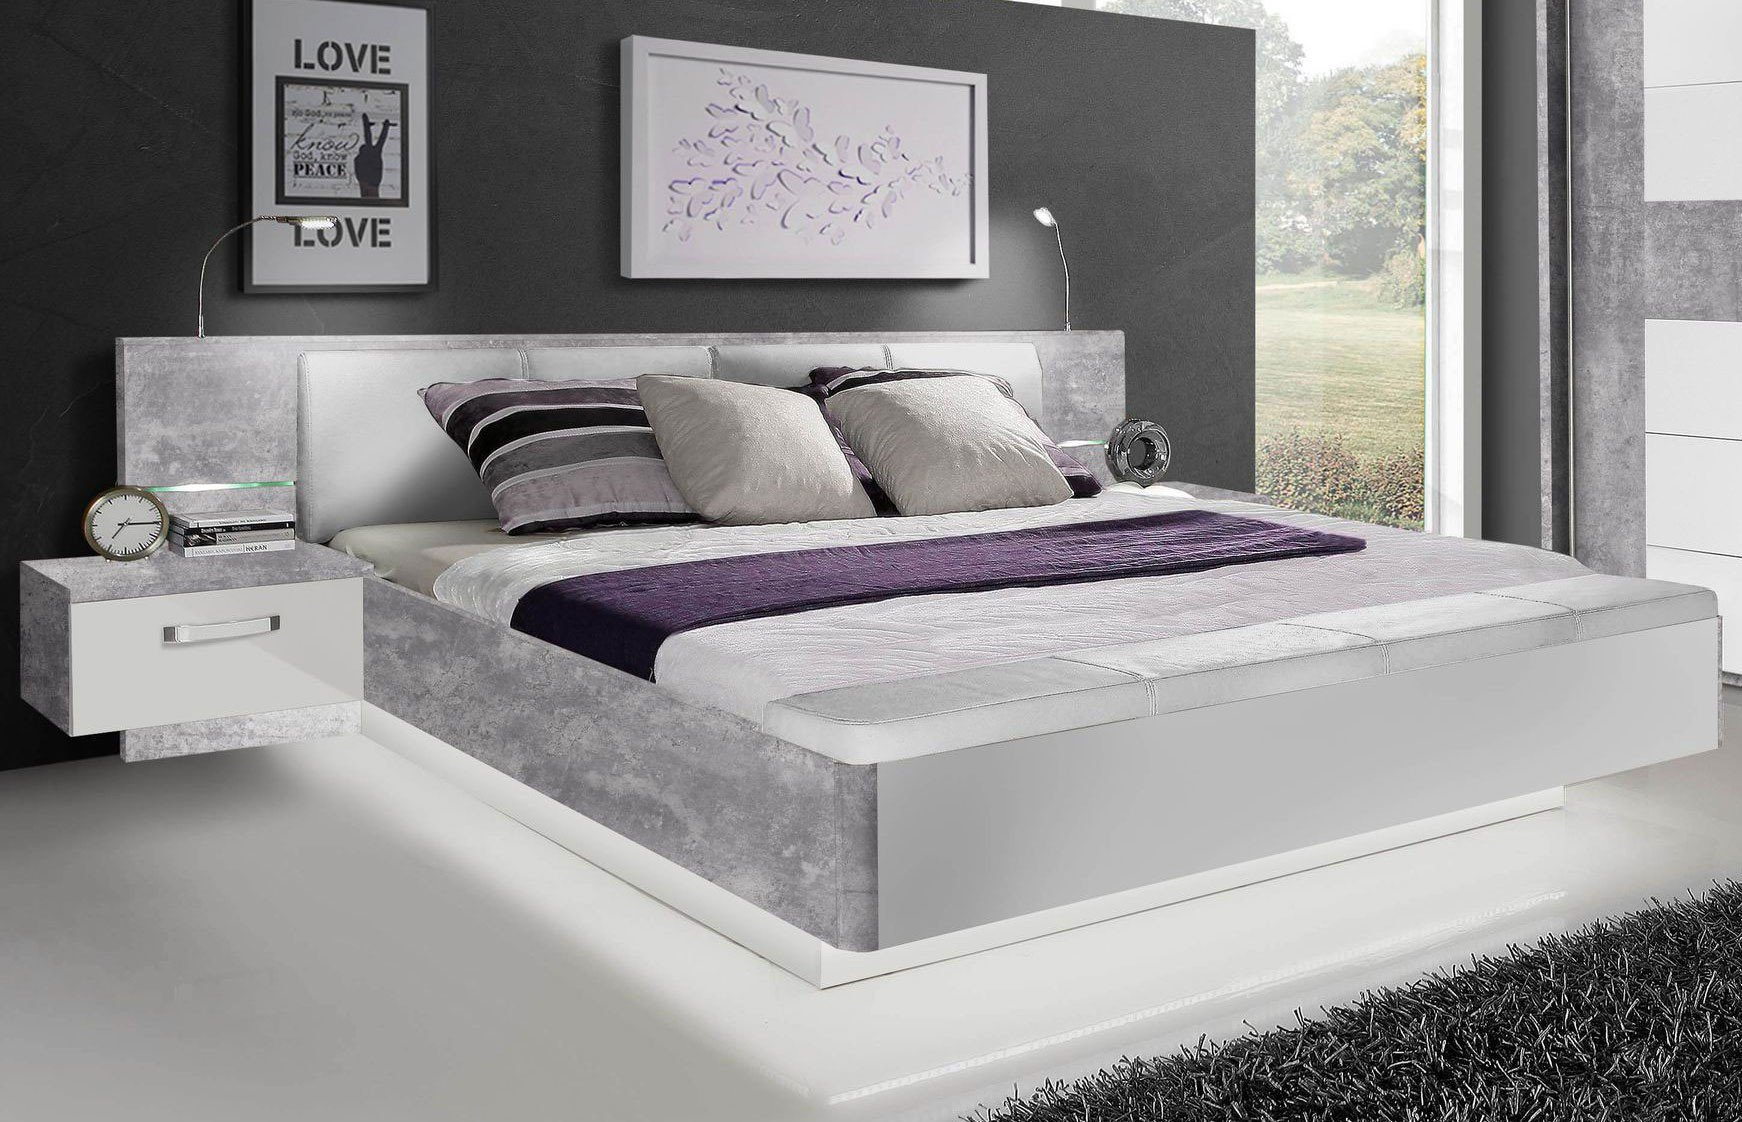 bett rondino von forte beton optik hochglanz wei m bel letz ihr online shop. Black Bedroom Furniture Sets. Home Design Ideas